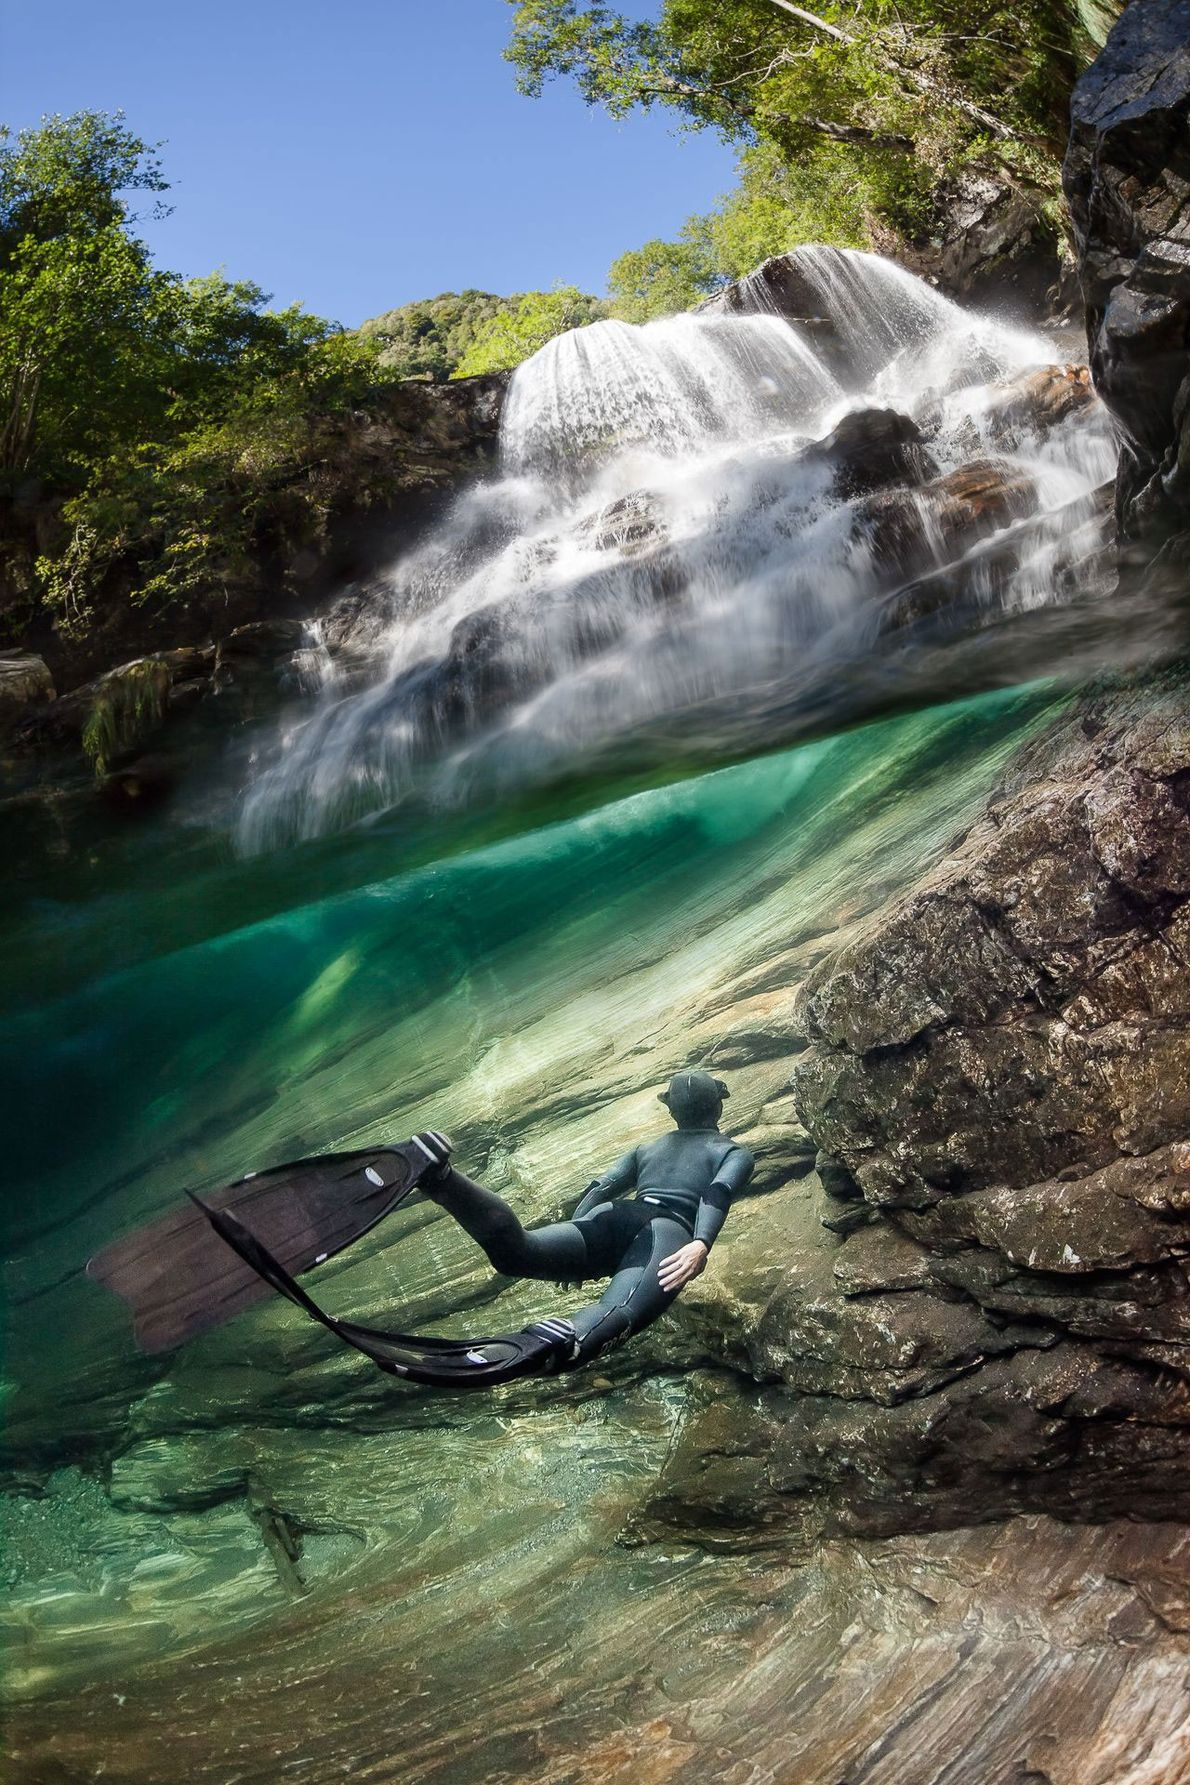 After a two-hour walk, Marc Henauer arrived at this waterfall along the Verzasca River. This composition, ...